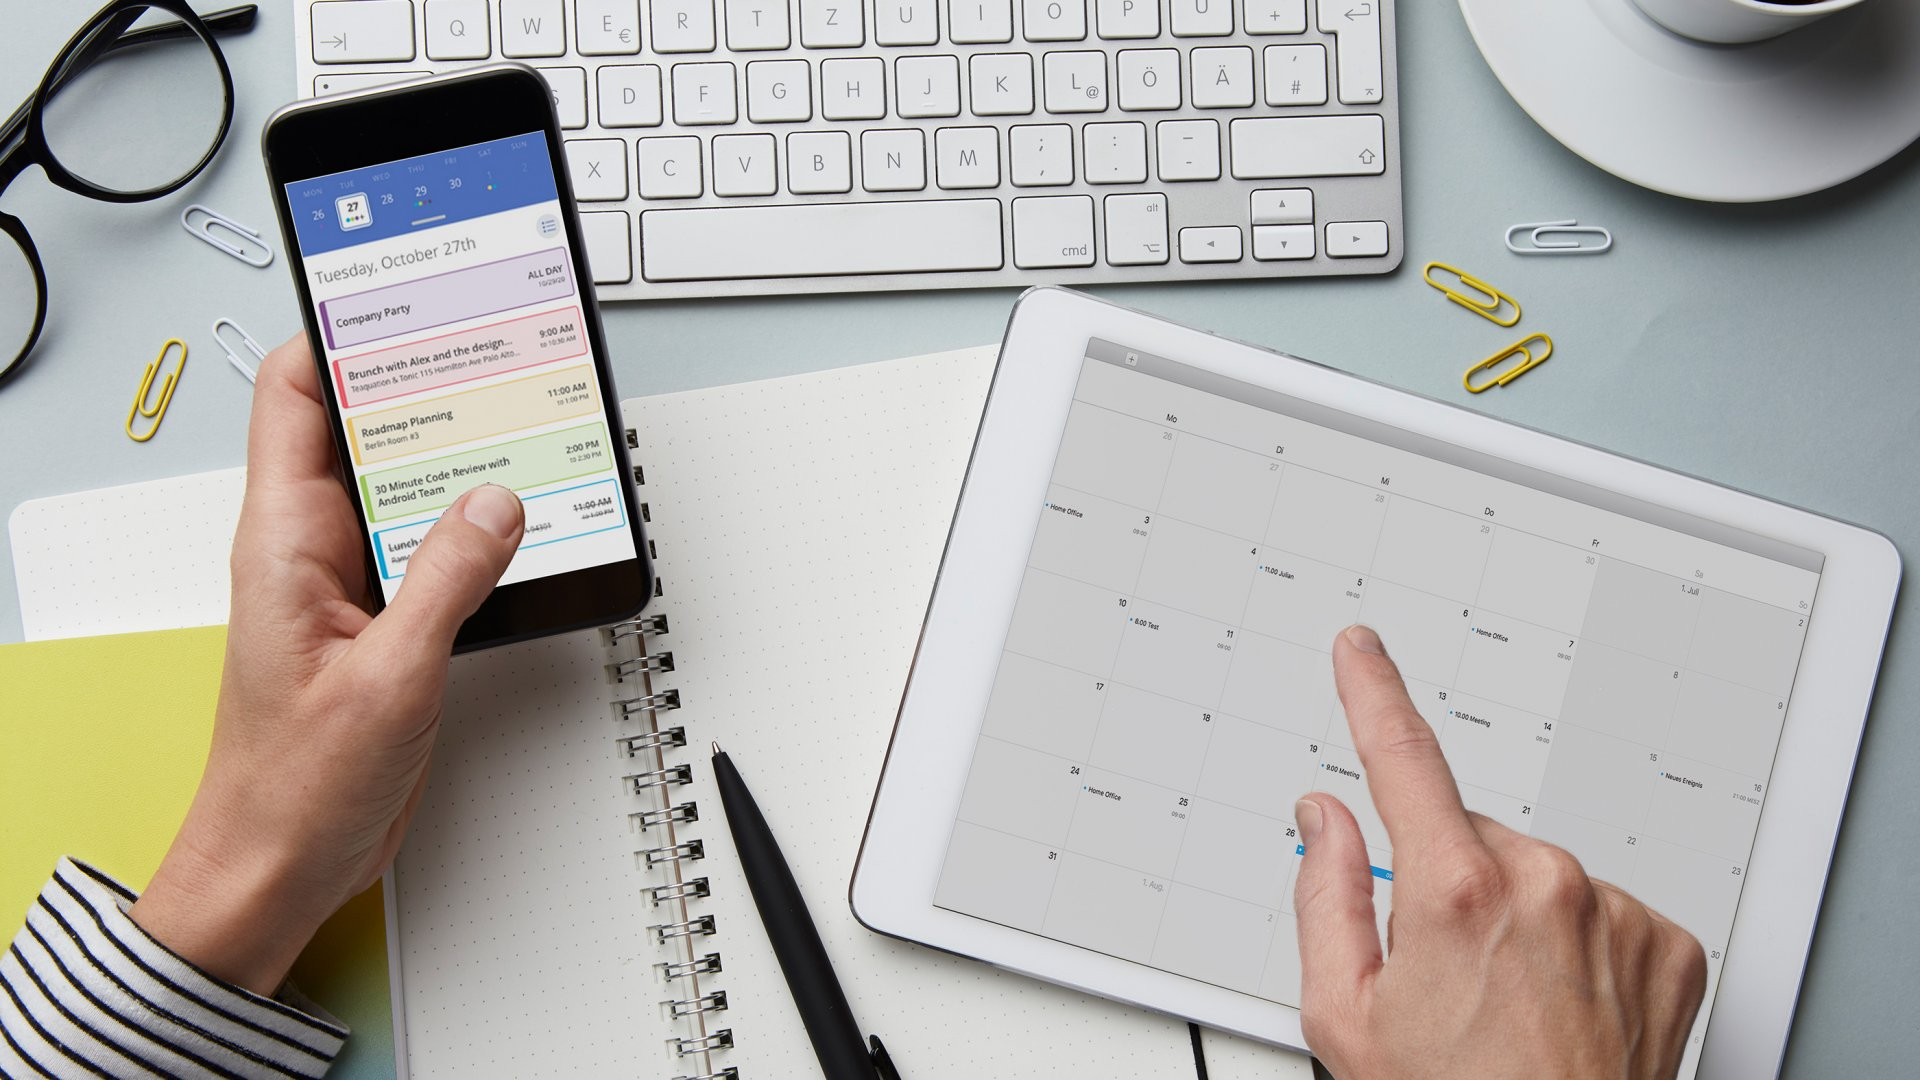 The Top 4 Productivity Tools You Haven't Heard of Yet